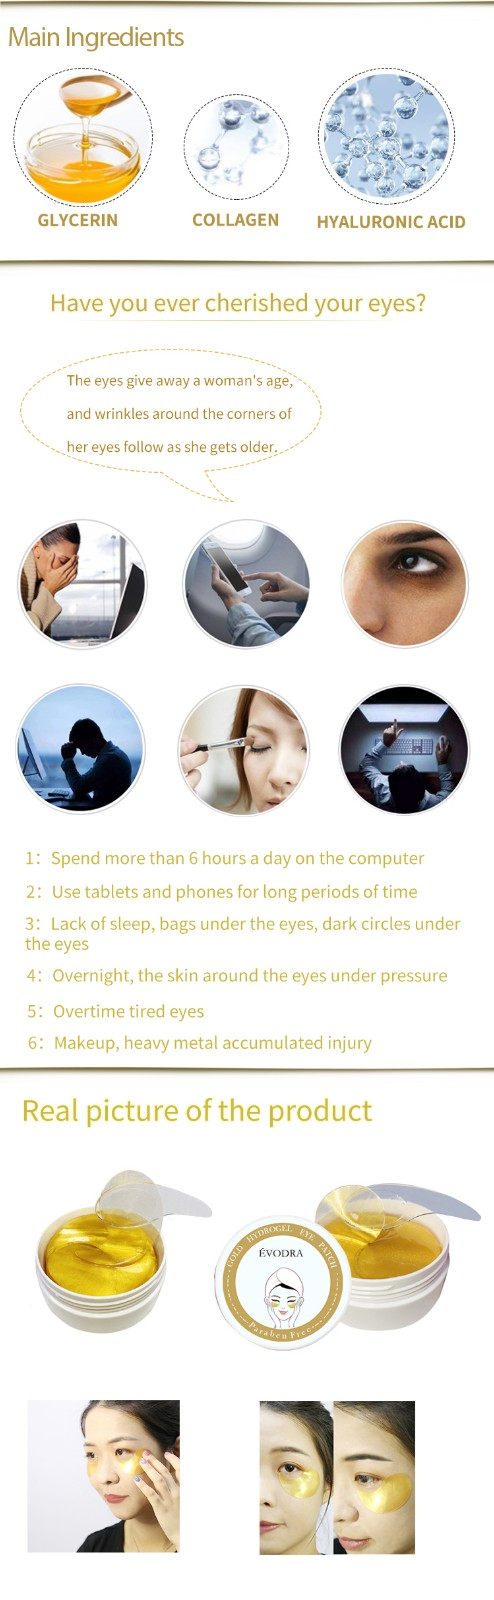 Calla-Skin Care Products Manufacture Manufacturer, Best Hydrating Eye Mask | Calla-1